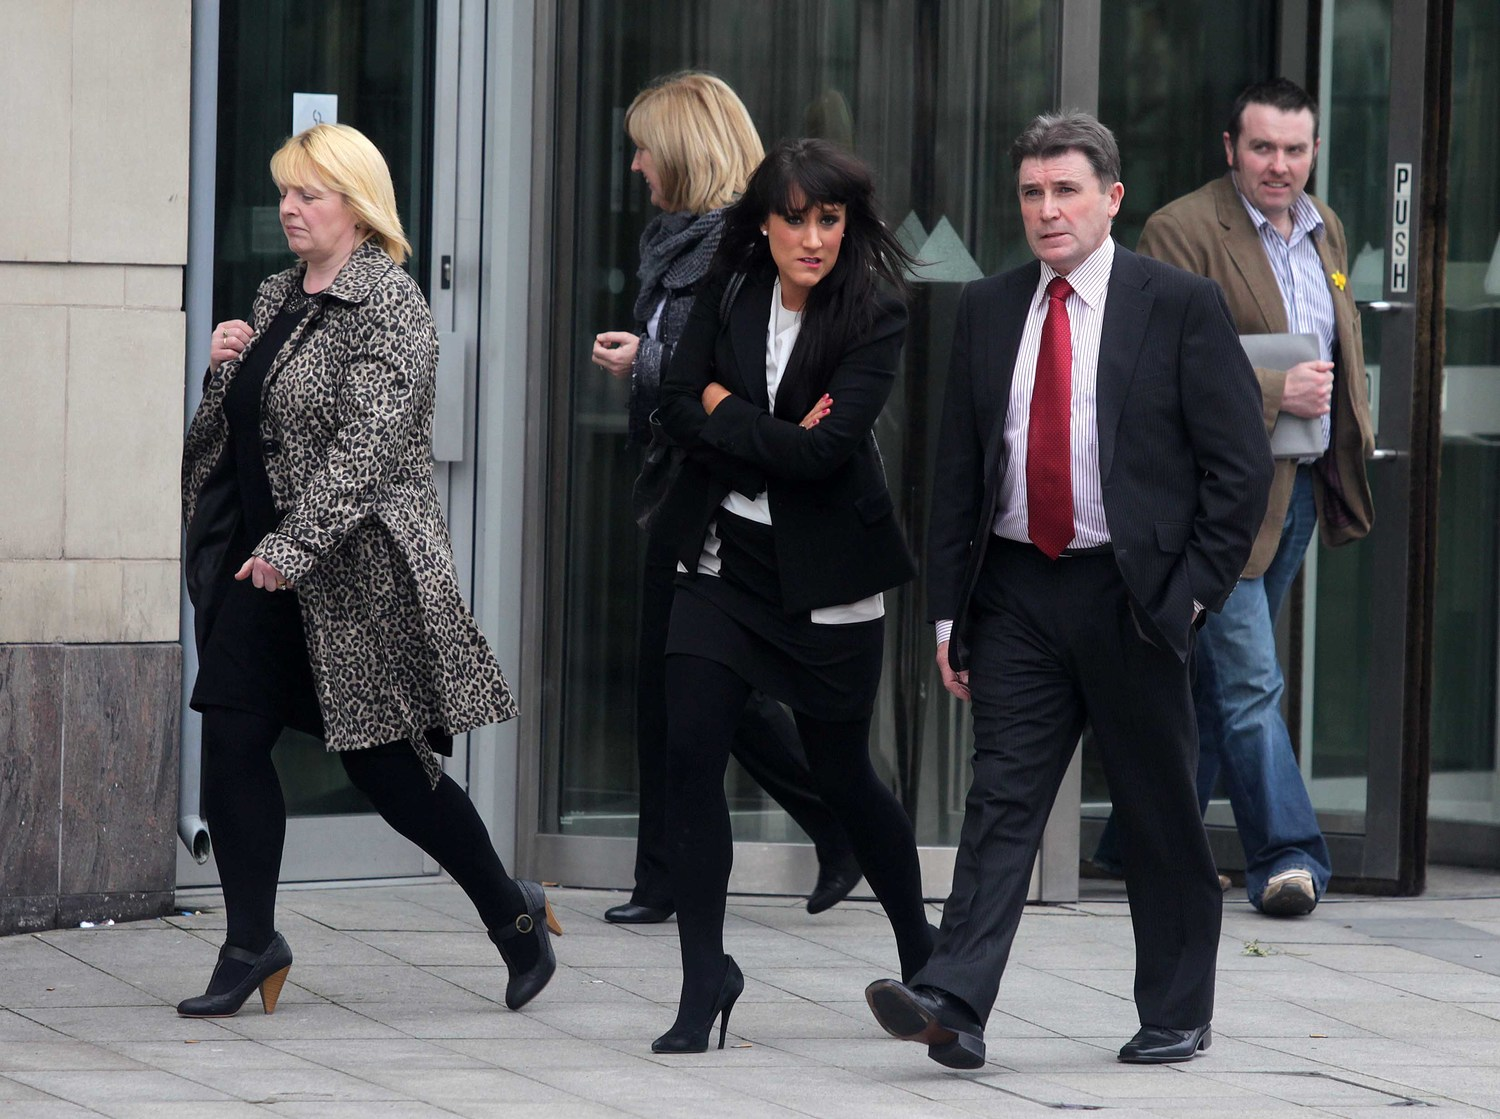 Martin McCaughey and Dessie Grew's families leave court